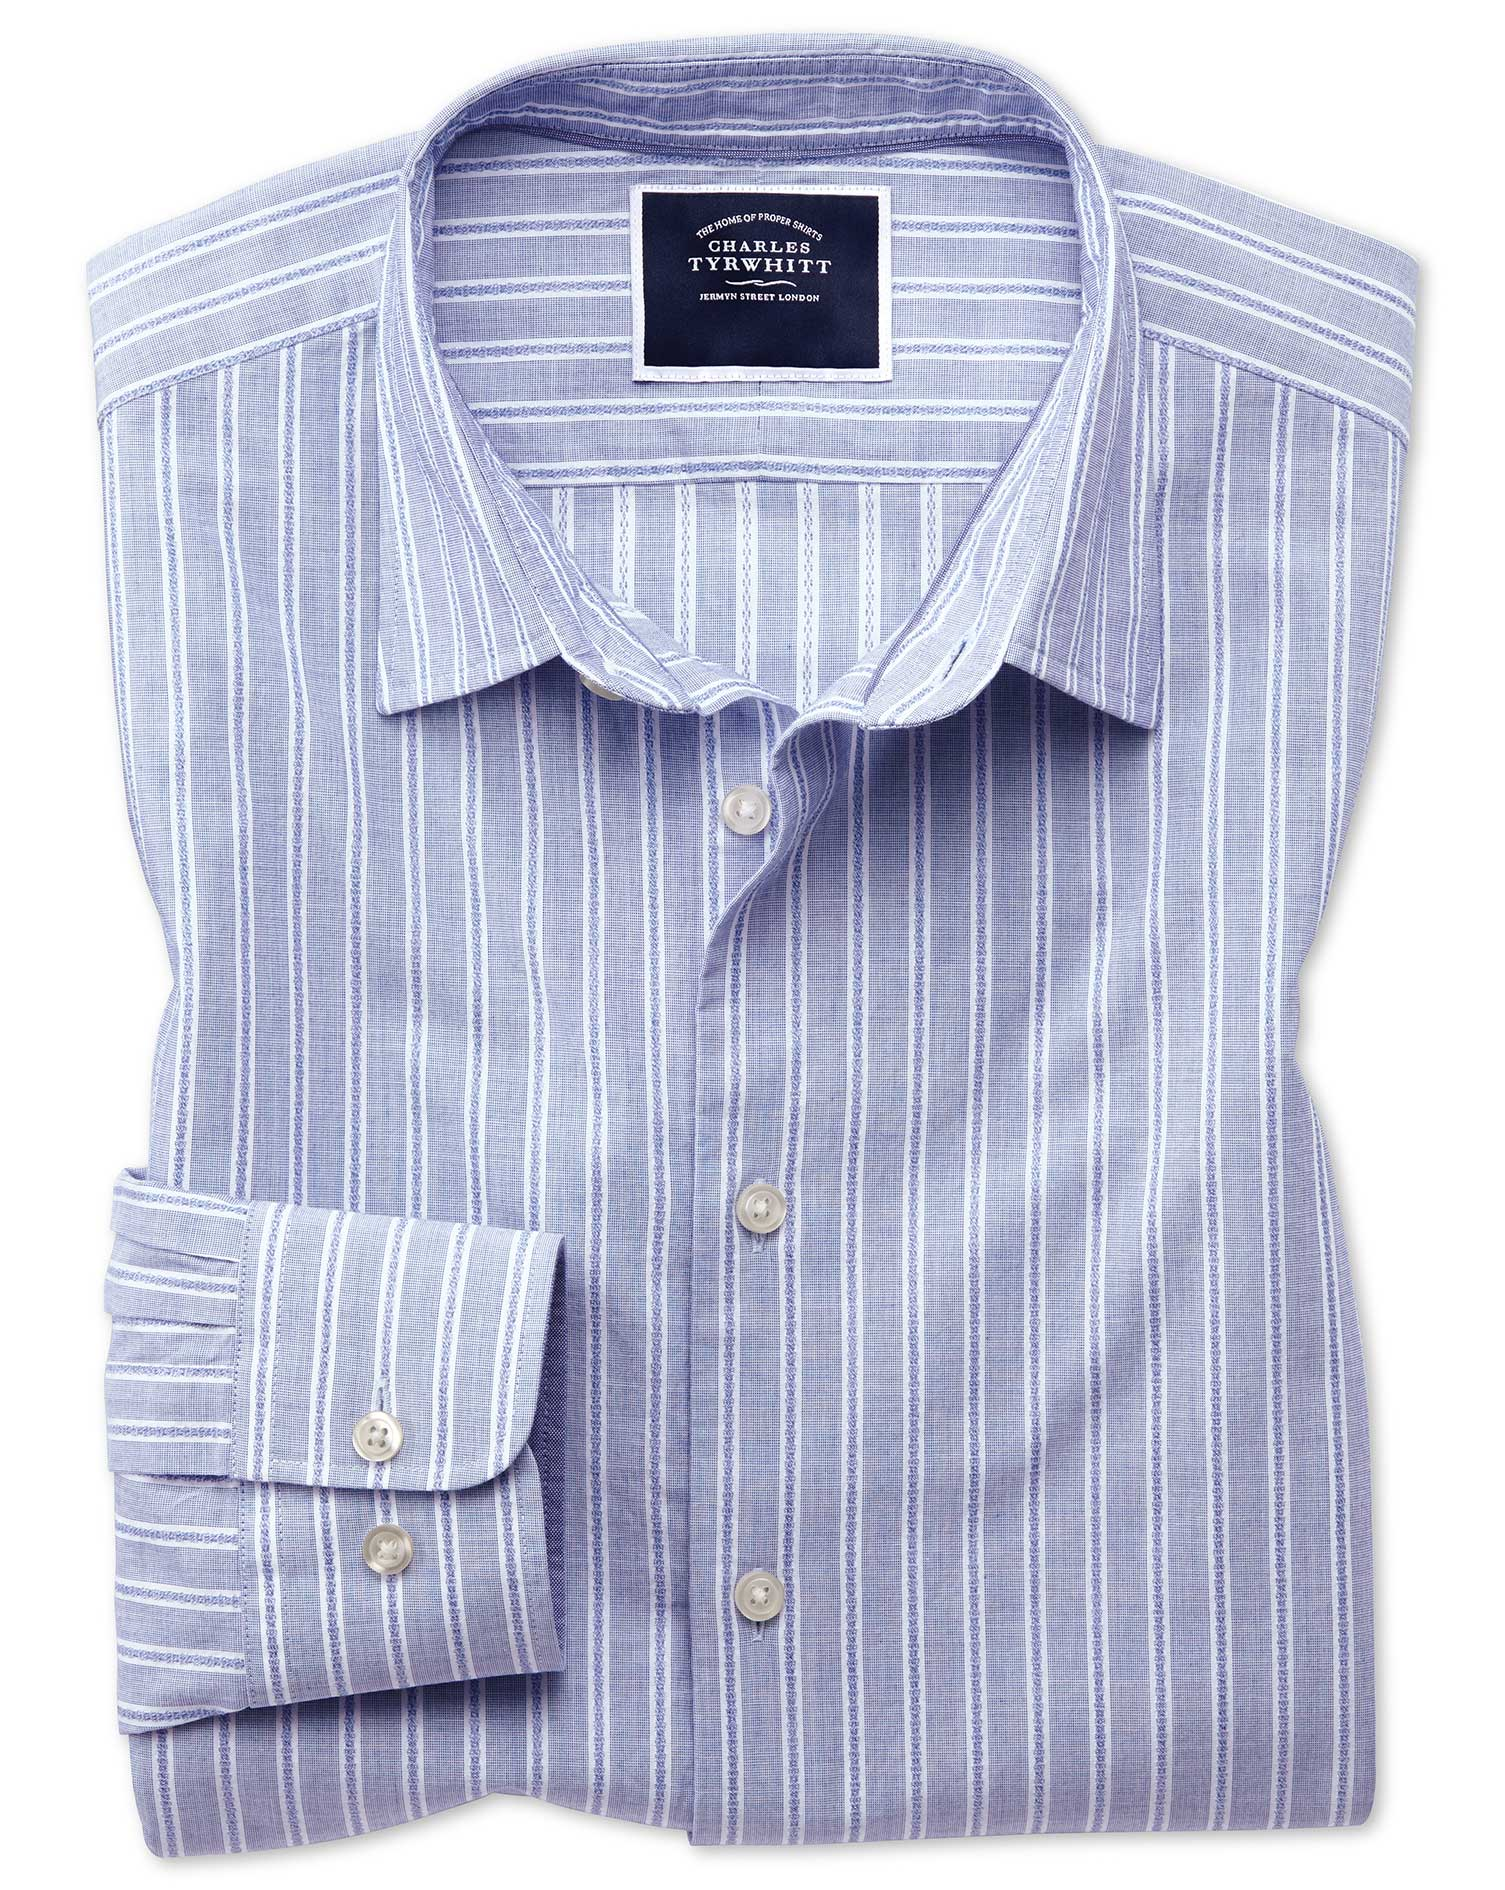 Slim Fit Blue and White Stripe Soft Texture Cotton Shirt Single Cuff Size Large by Charles Tyrwhitt